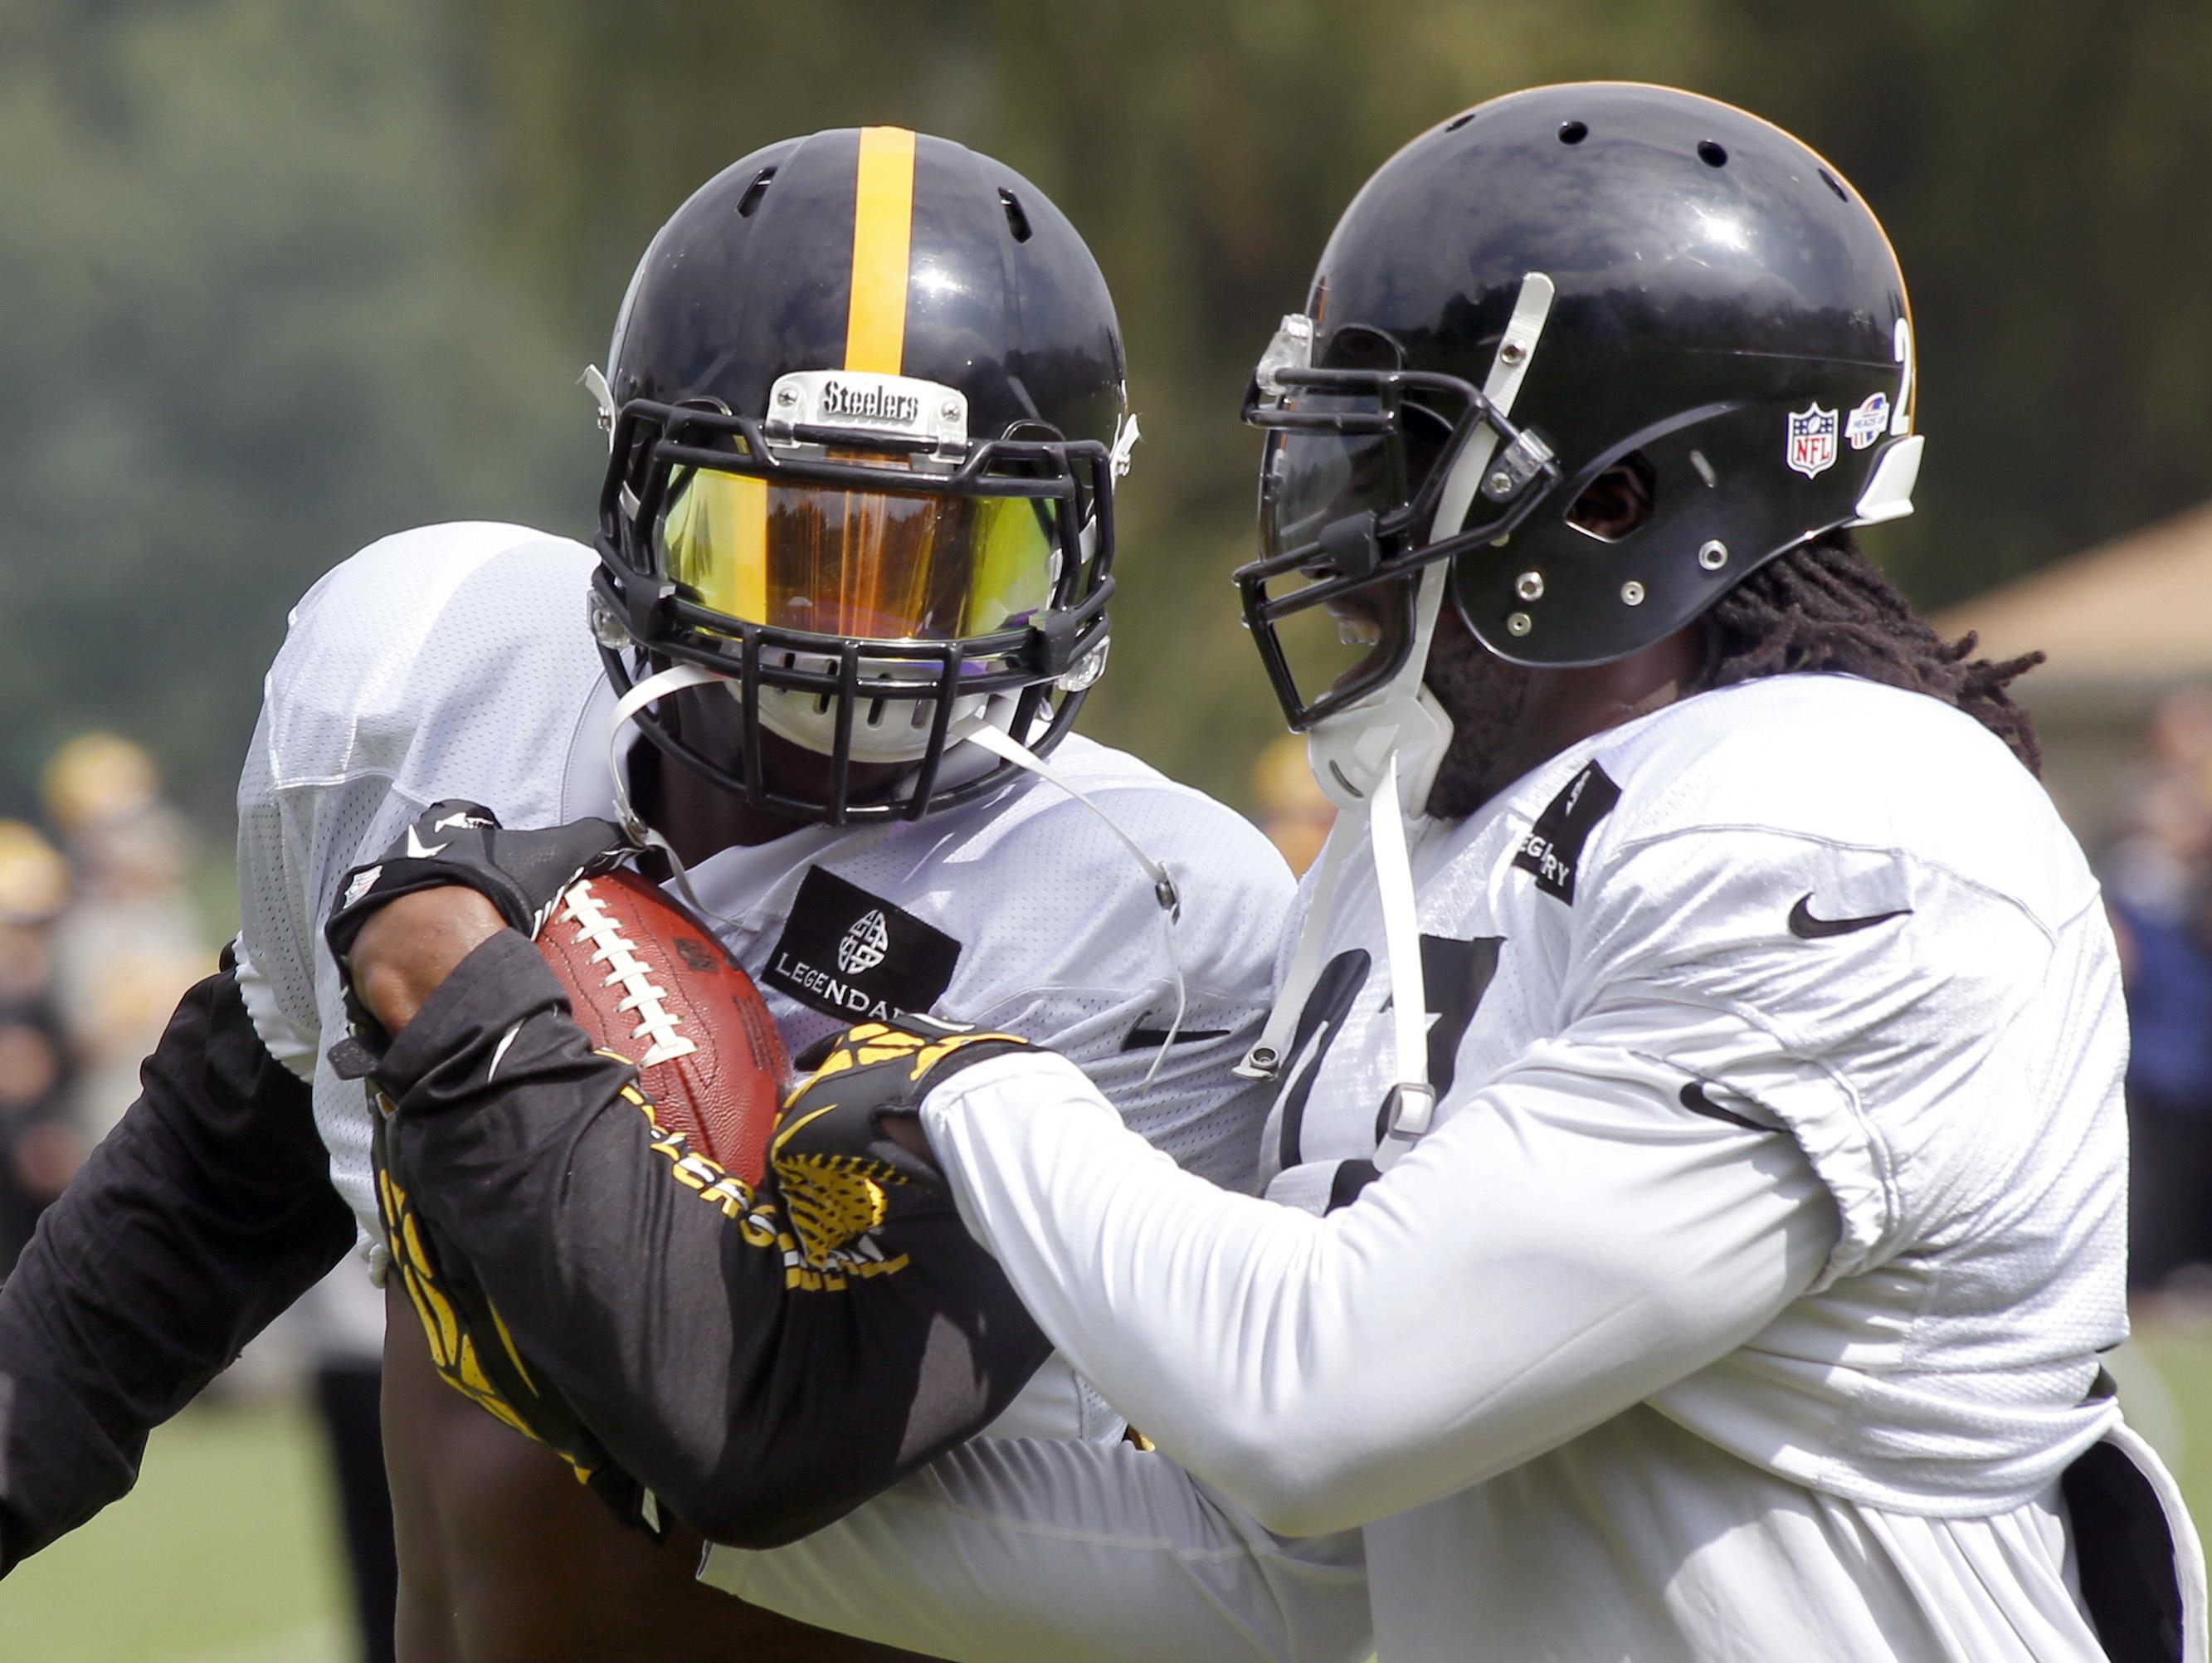 Steelers_bell_and_blount_football